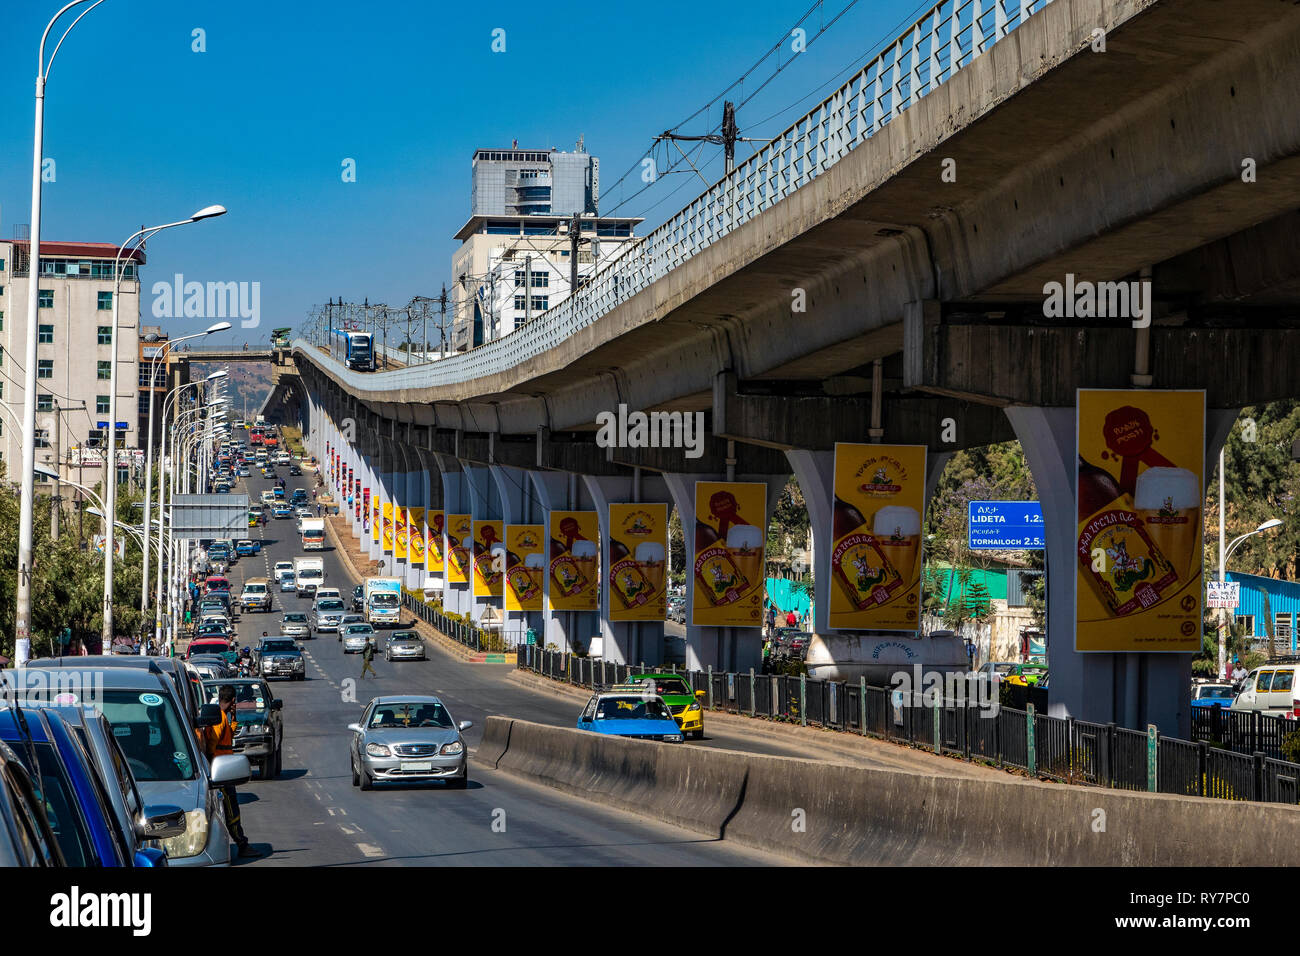 ETHOPIA, ADDIS ABABA, elevated railway line above the central Chad road in the city center oft the Ethopian capital - Stock Image